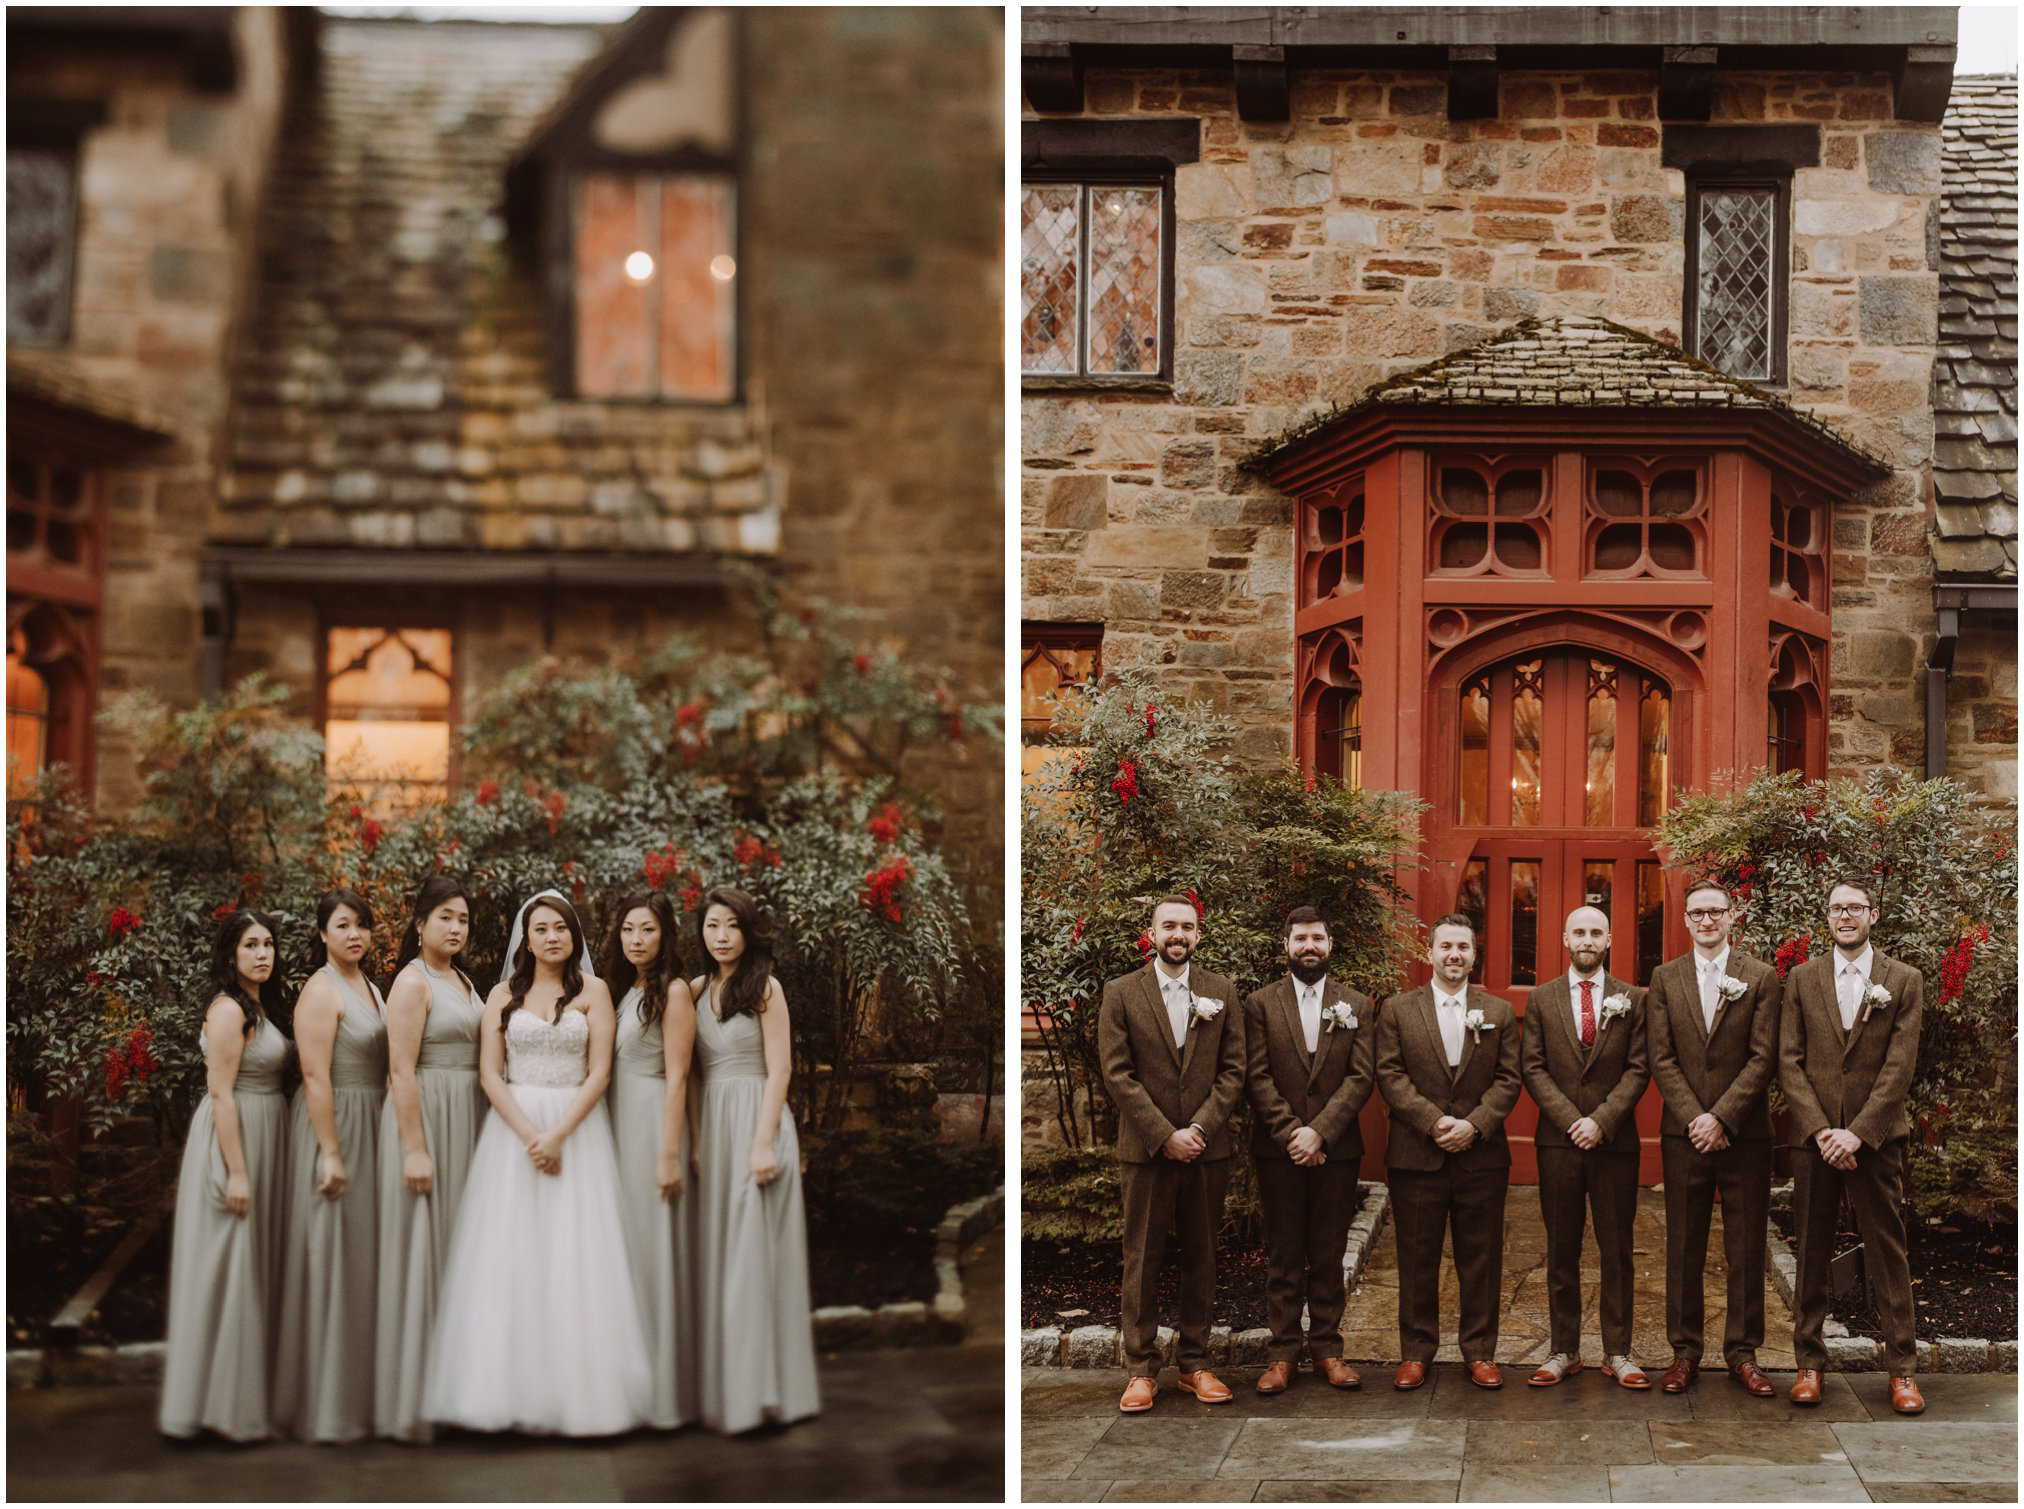 Bridal Party Pictures at Cloisters Castle